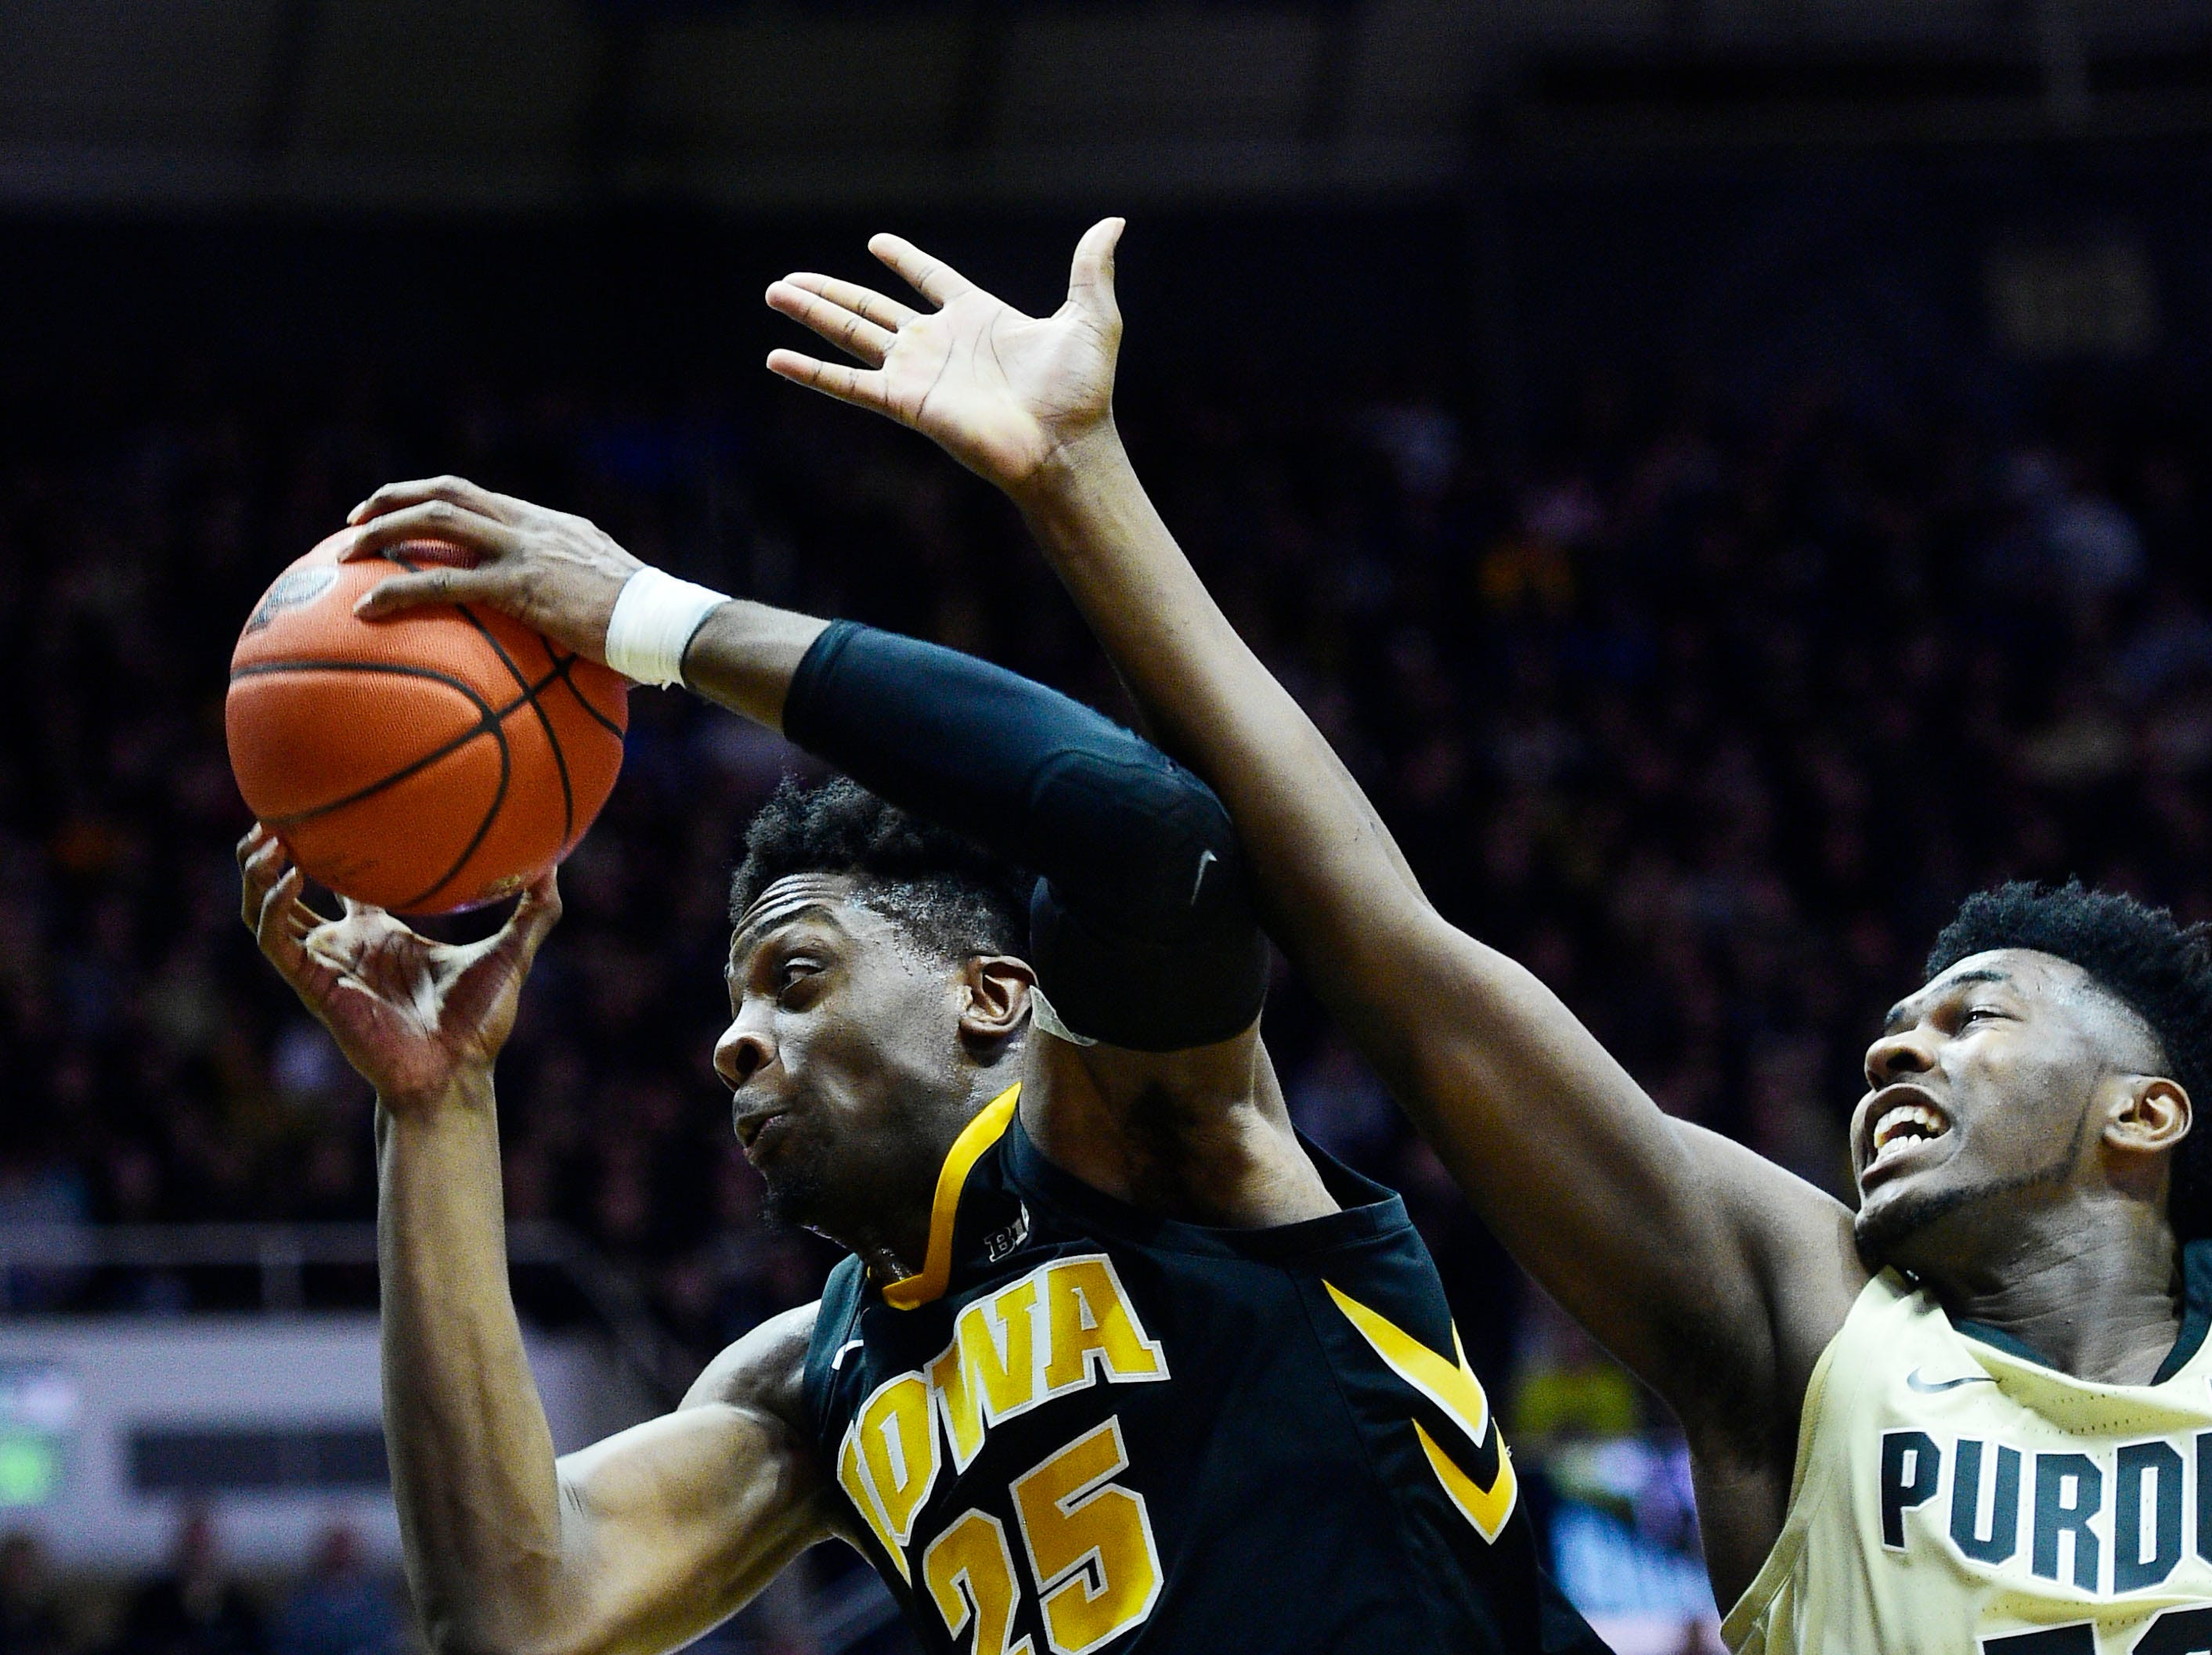 Jan 3, 2019; West Lafayette, IN, USA;  Iowa Hawkeyes forward Tyler Cook  (25) fights for possession of the ball in the first half against the Purdue Boilermakers forward Trevor Williams (50) at Mackey Arena. Mandatory Credit: Thomas J. Russo-USA TODAY Sports